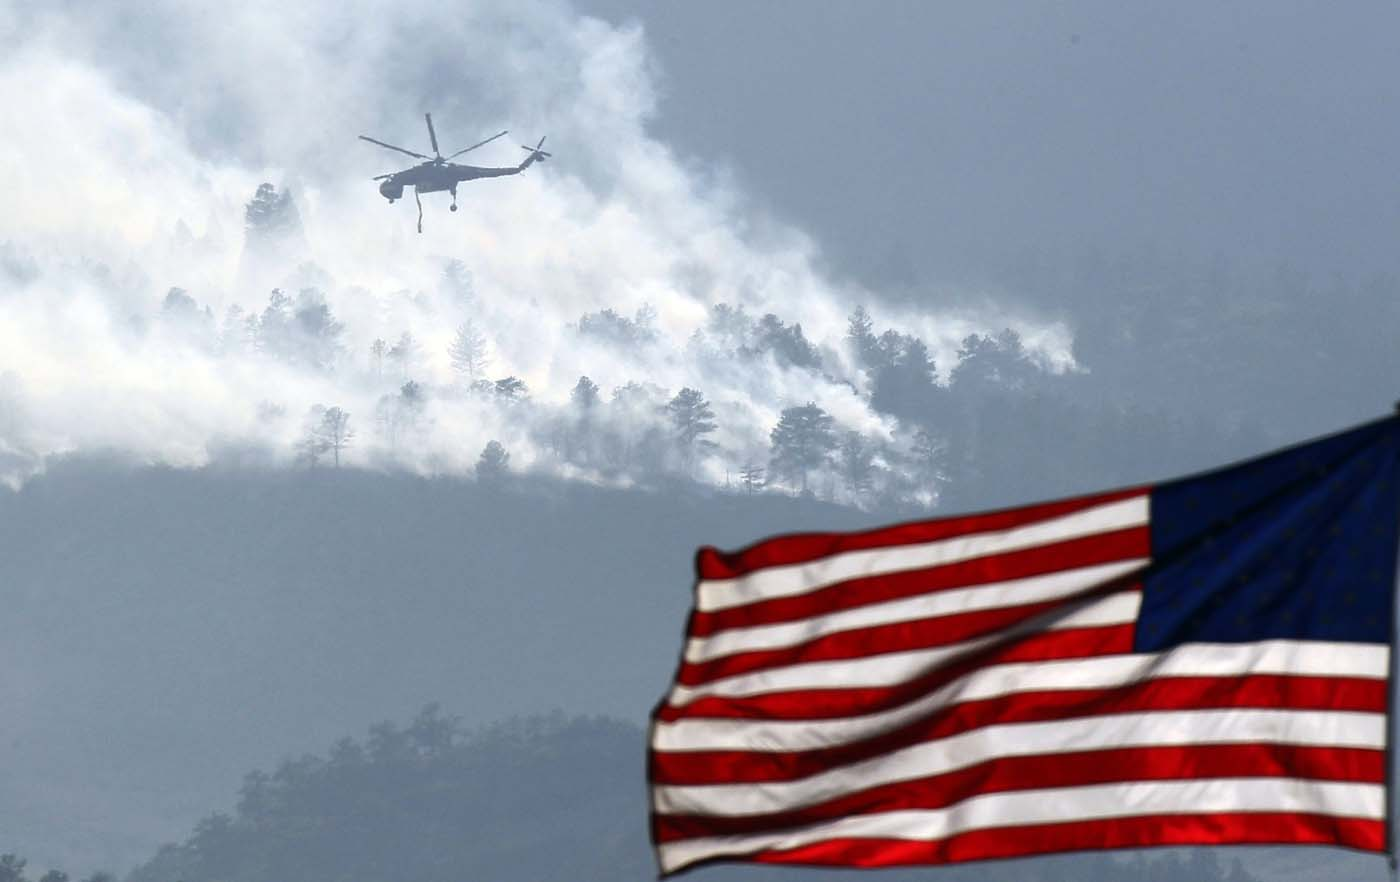 JUNE 27: A helicopter makes a pass before dropping water on the Waldo Canyon fire burning behind the U.S. Air Force Academy, west of Colorado Springs, Colorado June 27, 2012. (Rick Wilking/Reuters)